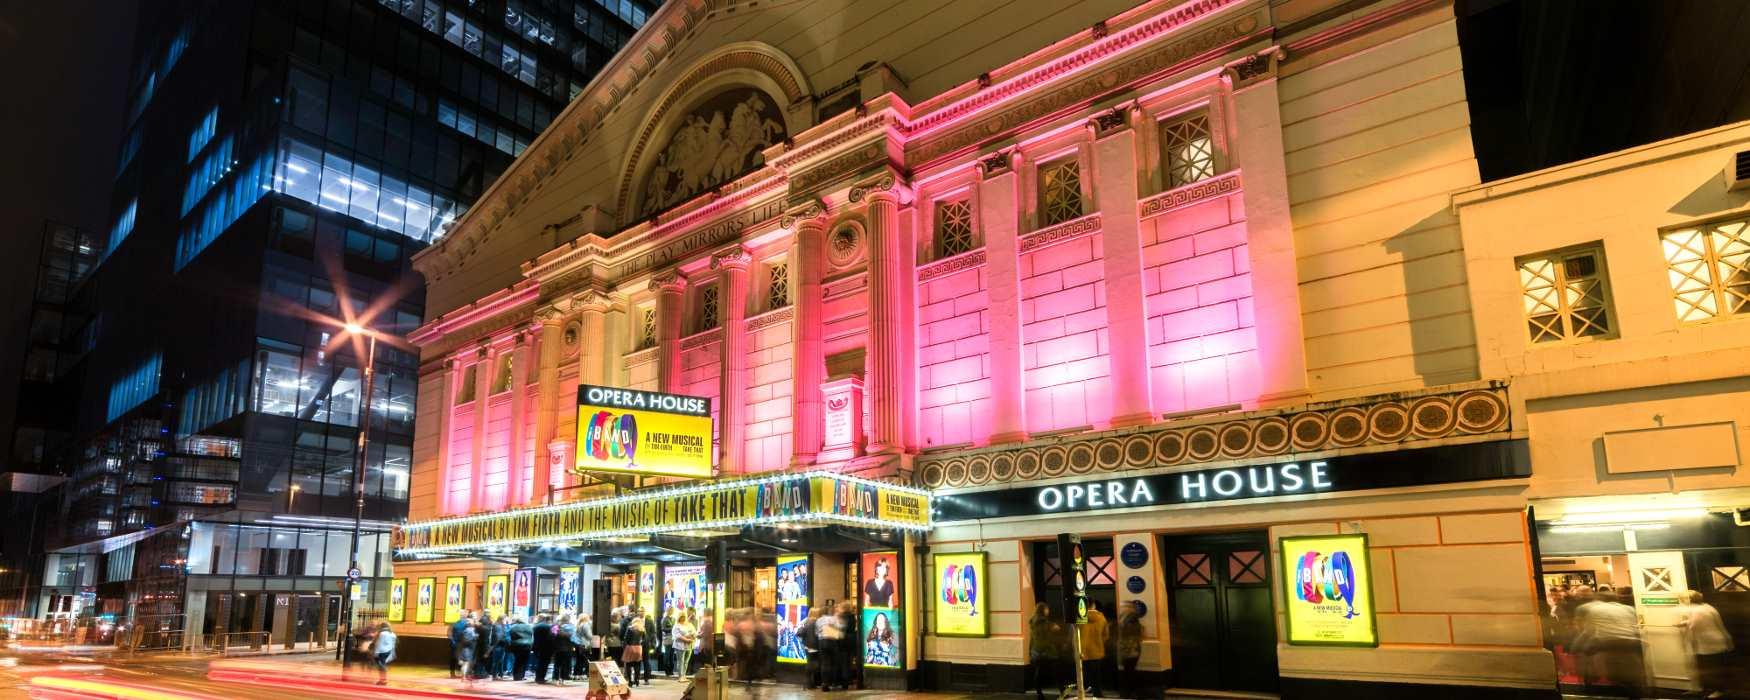 Palace Theatre, Opera House Theatre, TotalNtertainment, Theatre Productions